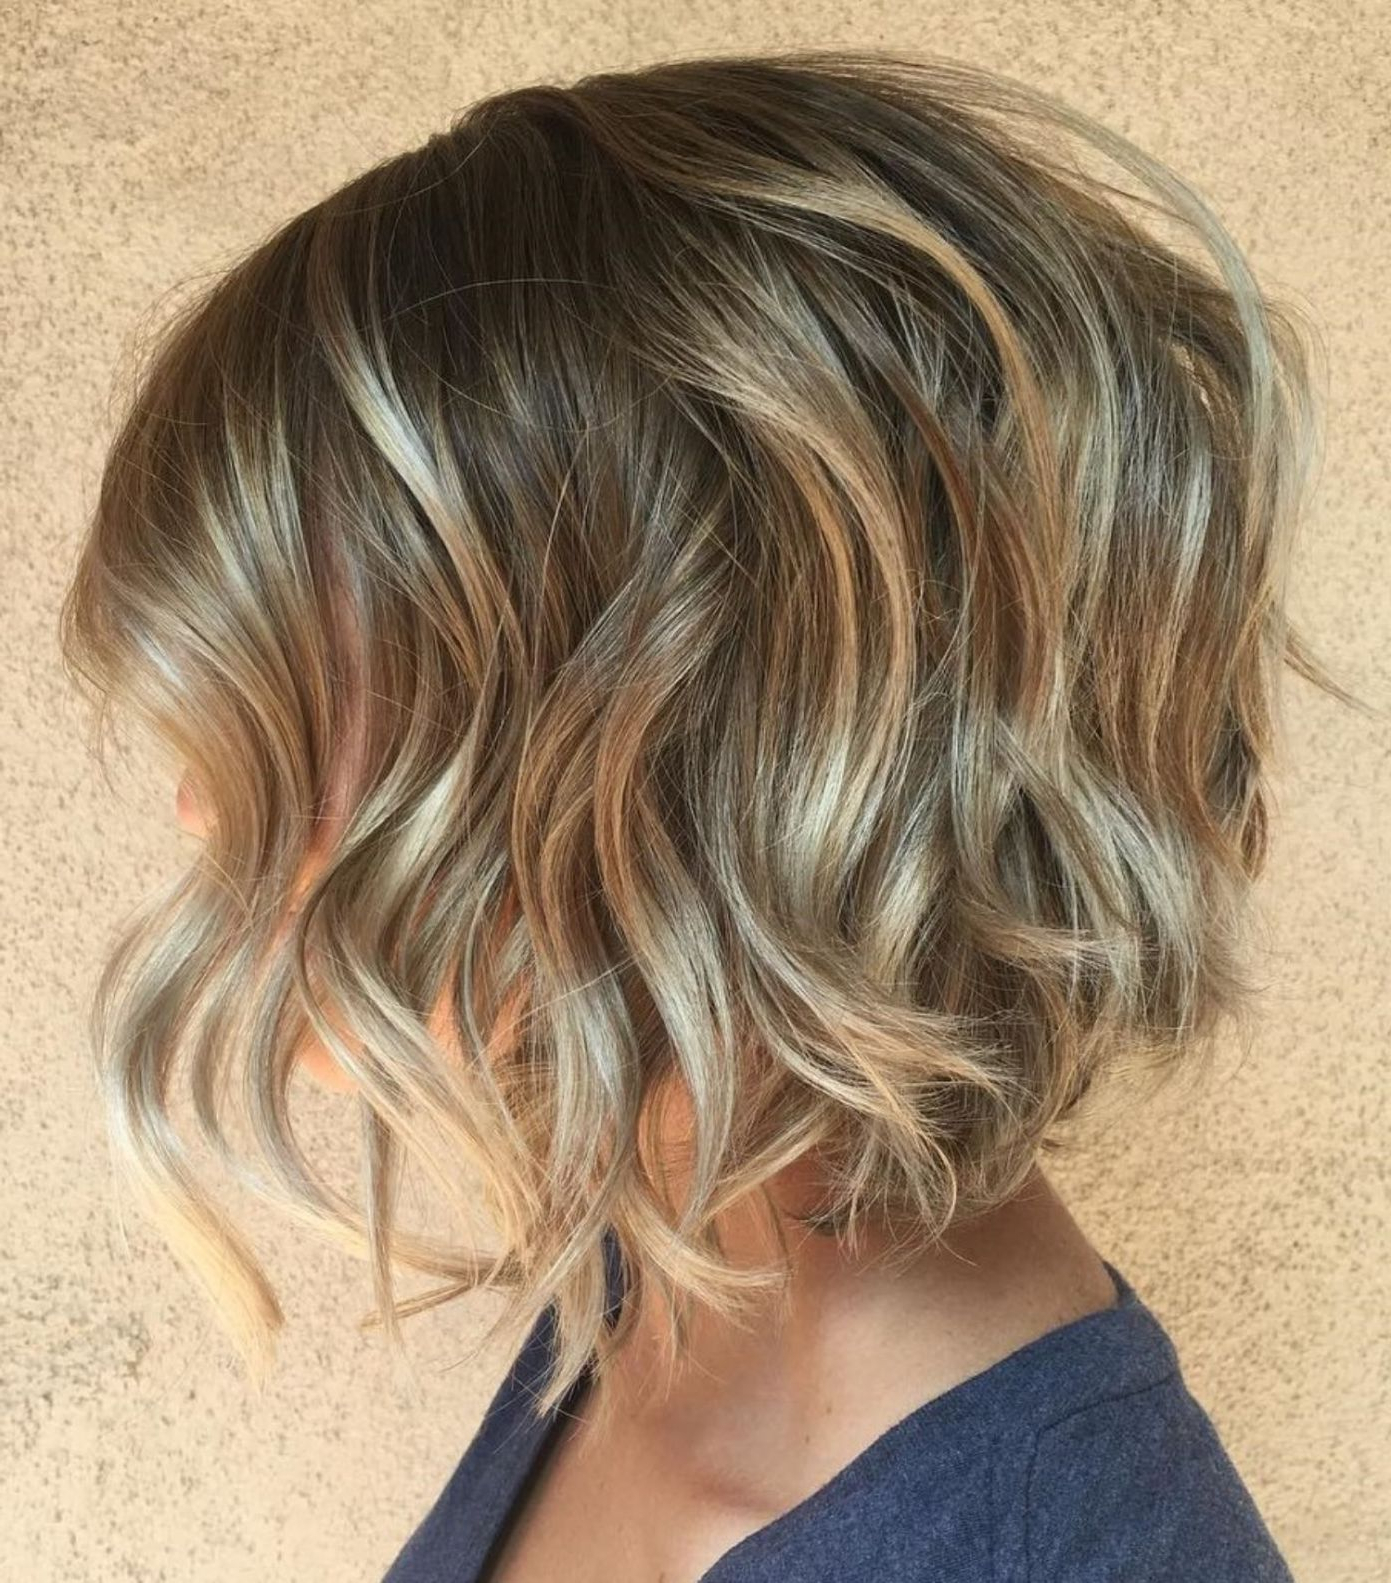 60 Best Short Bob Haircuts And Hairstyles For Women | Short With Short Bob Hairstyles With Highlights (View 5 of 20)